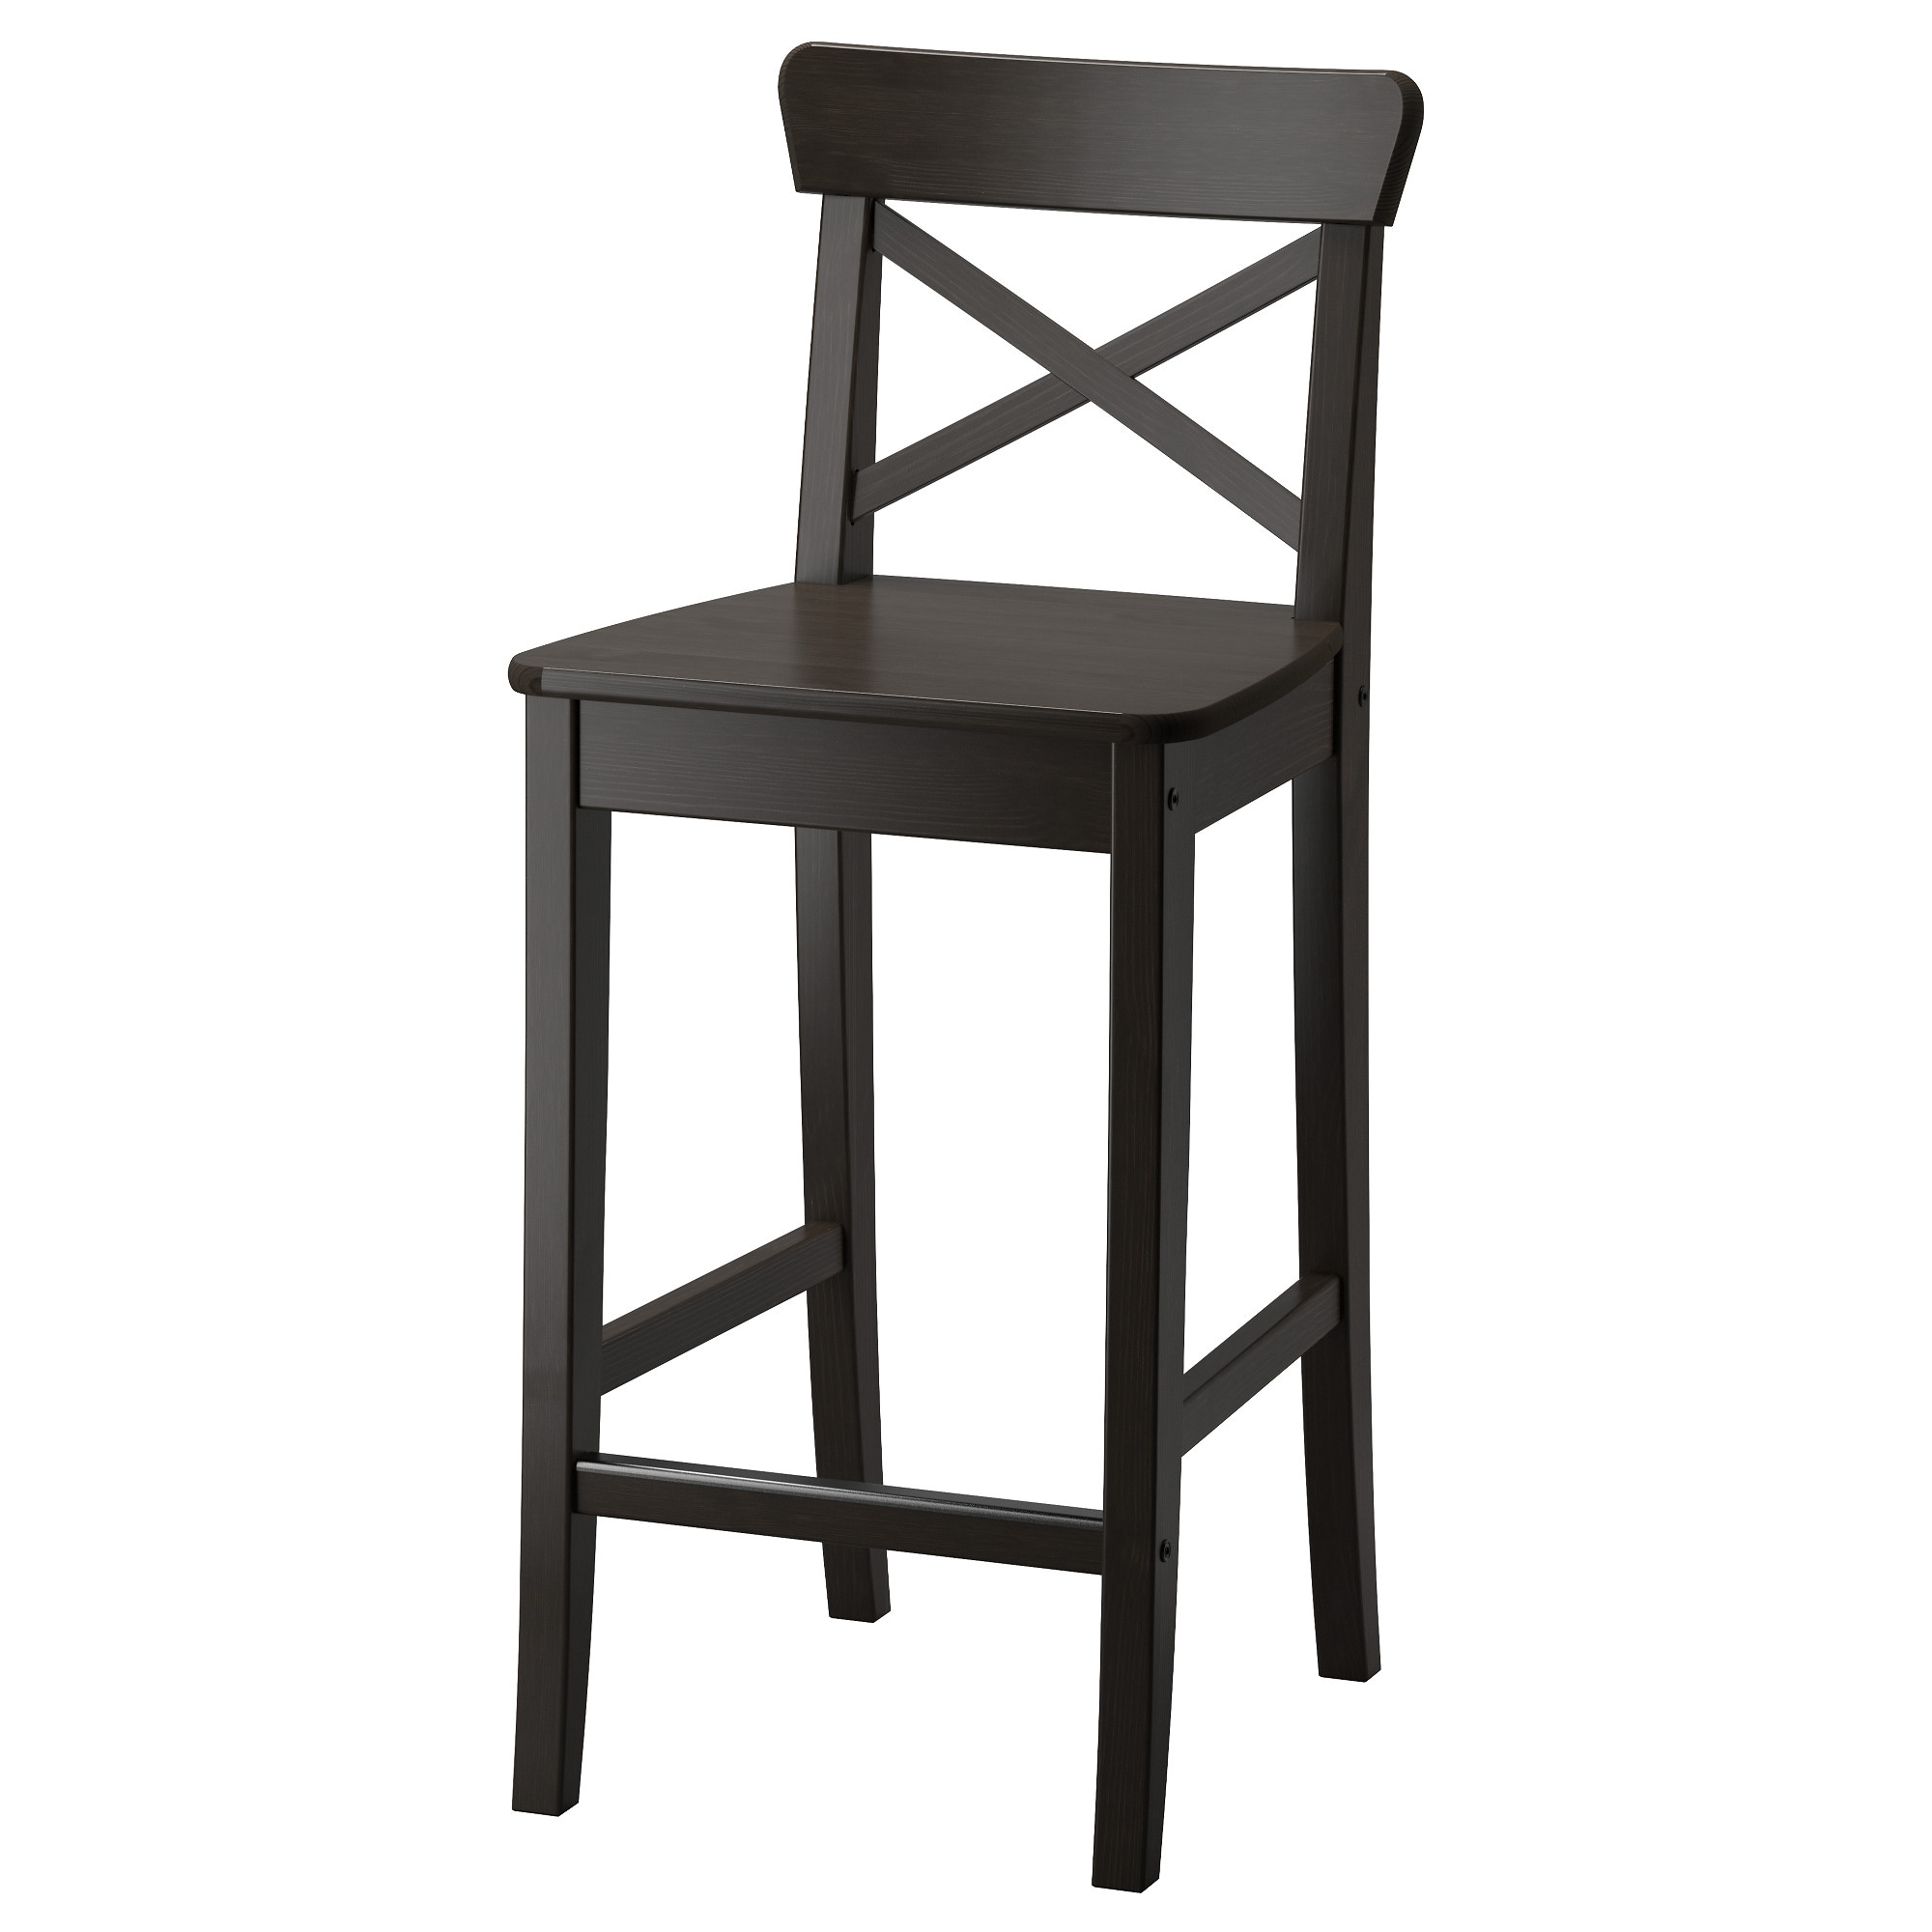 Superior Bar Stools For A Bar Part - 2: INGOLF Bar Stool With Backrest - IKEA